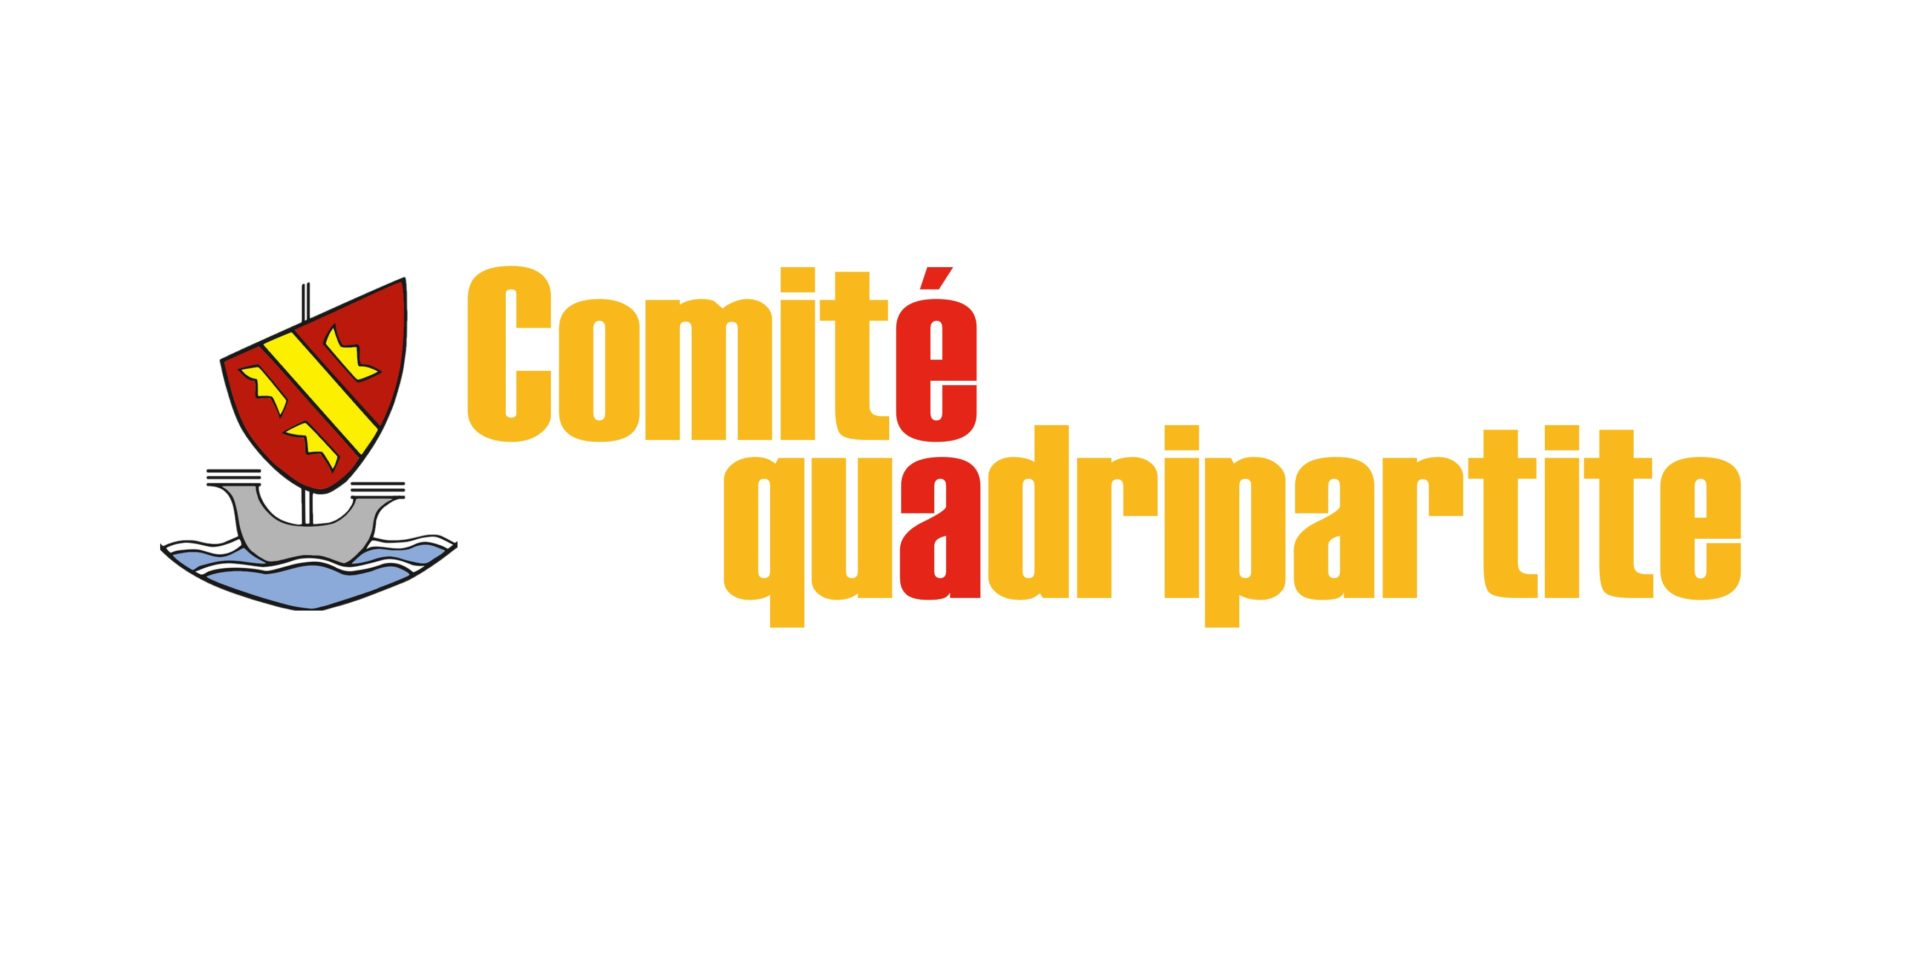 Le comité quadripartite